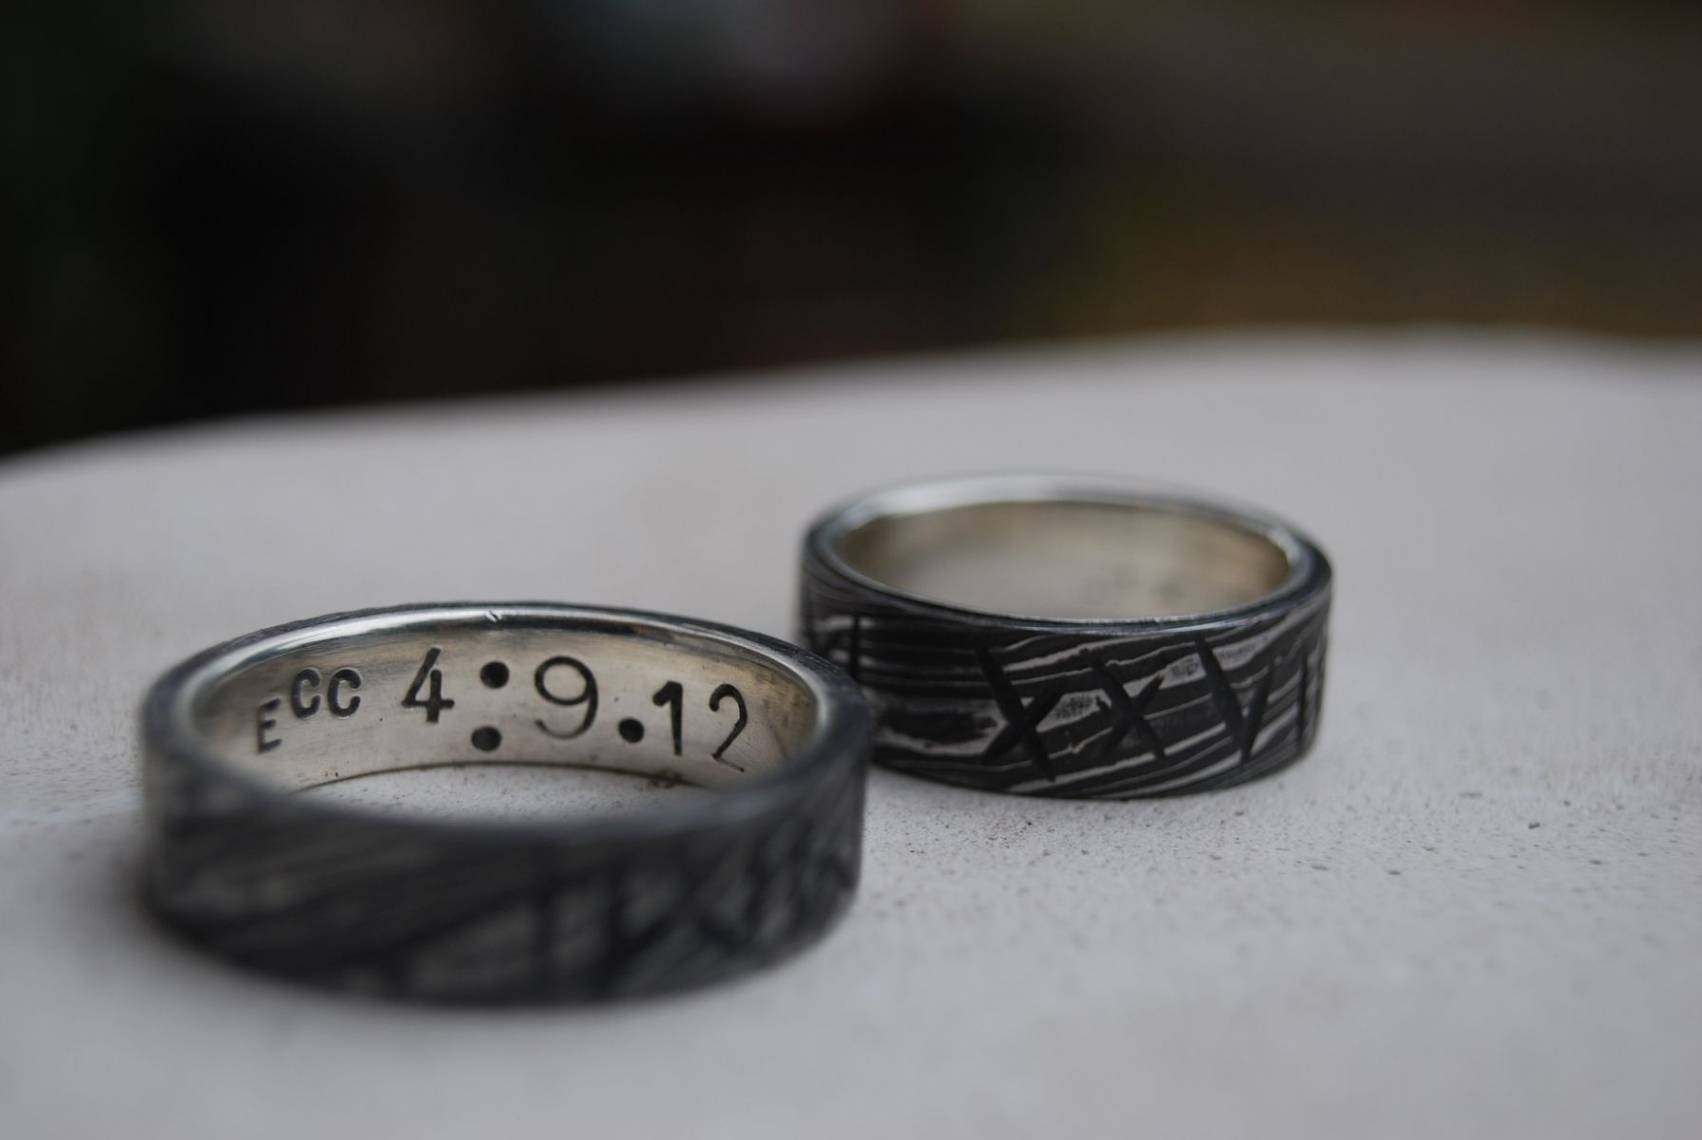 Stainless Steel Rings | Steel Bands | Custommade With Outdoorsman Throughout Outdoorsman Wedding Bands (View 15 of 15)